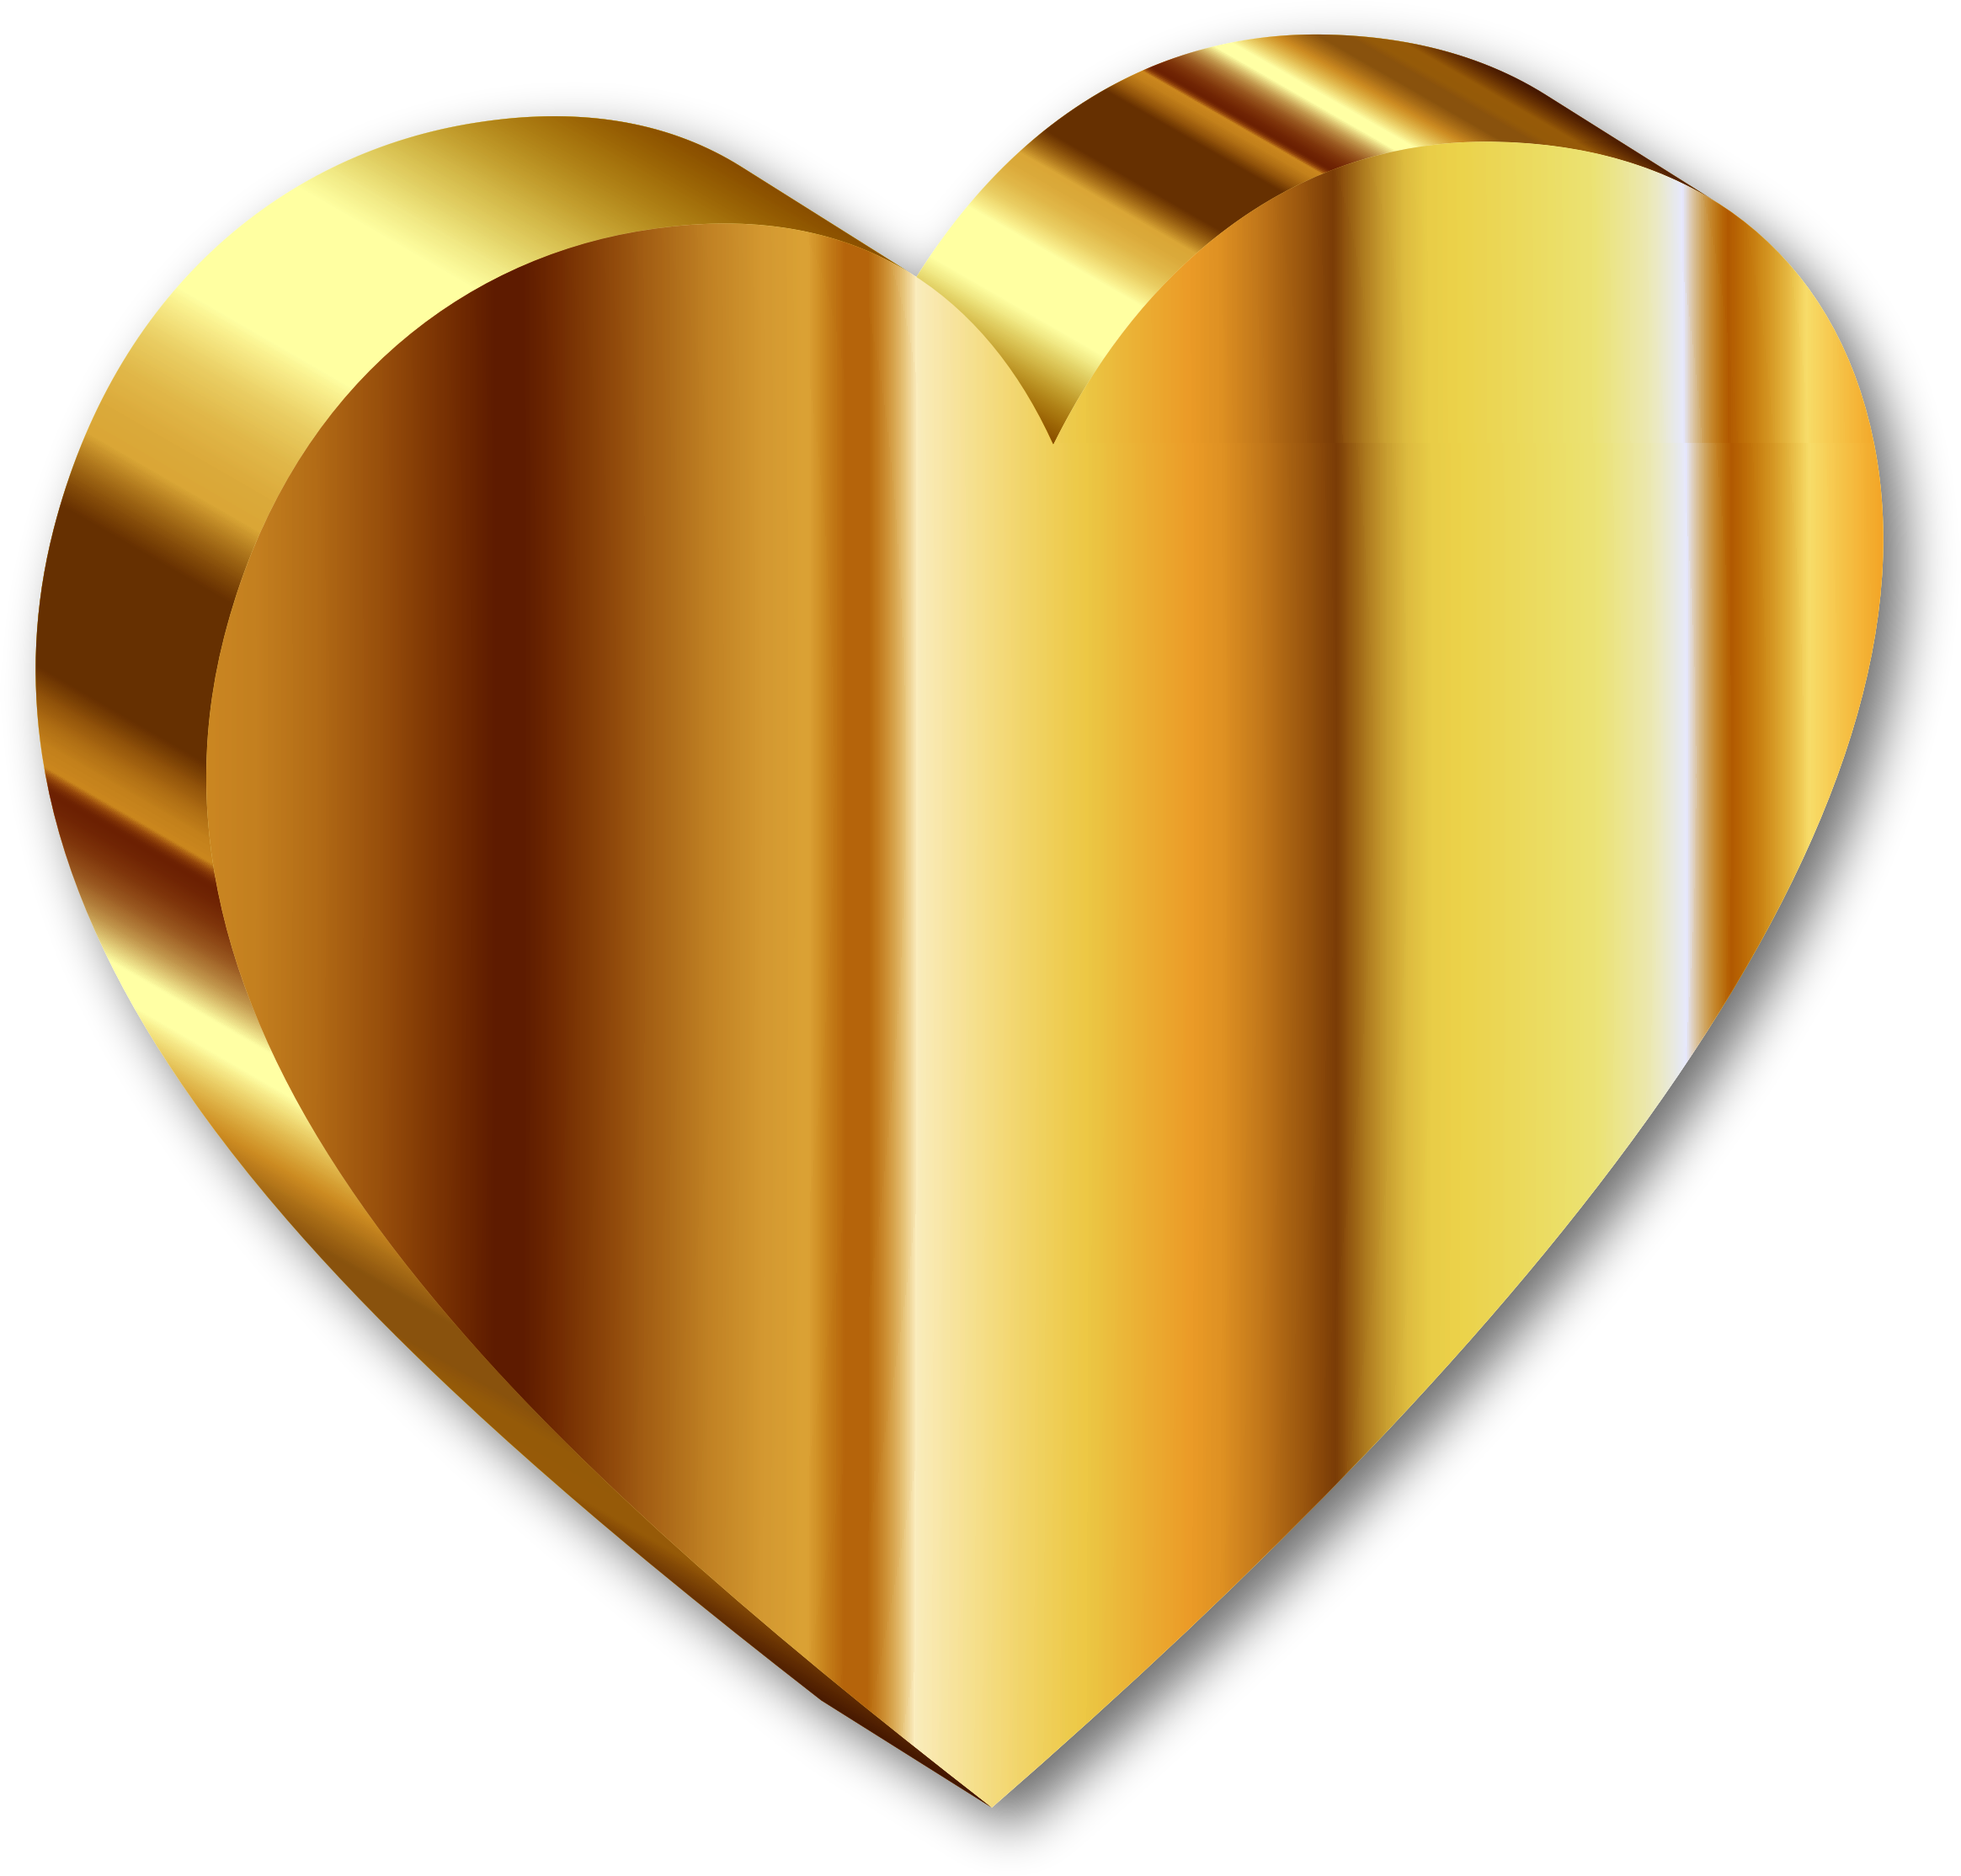 Gold color png. D heart of